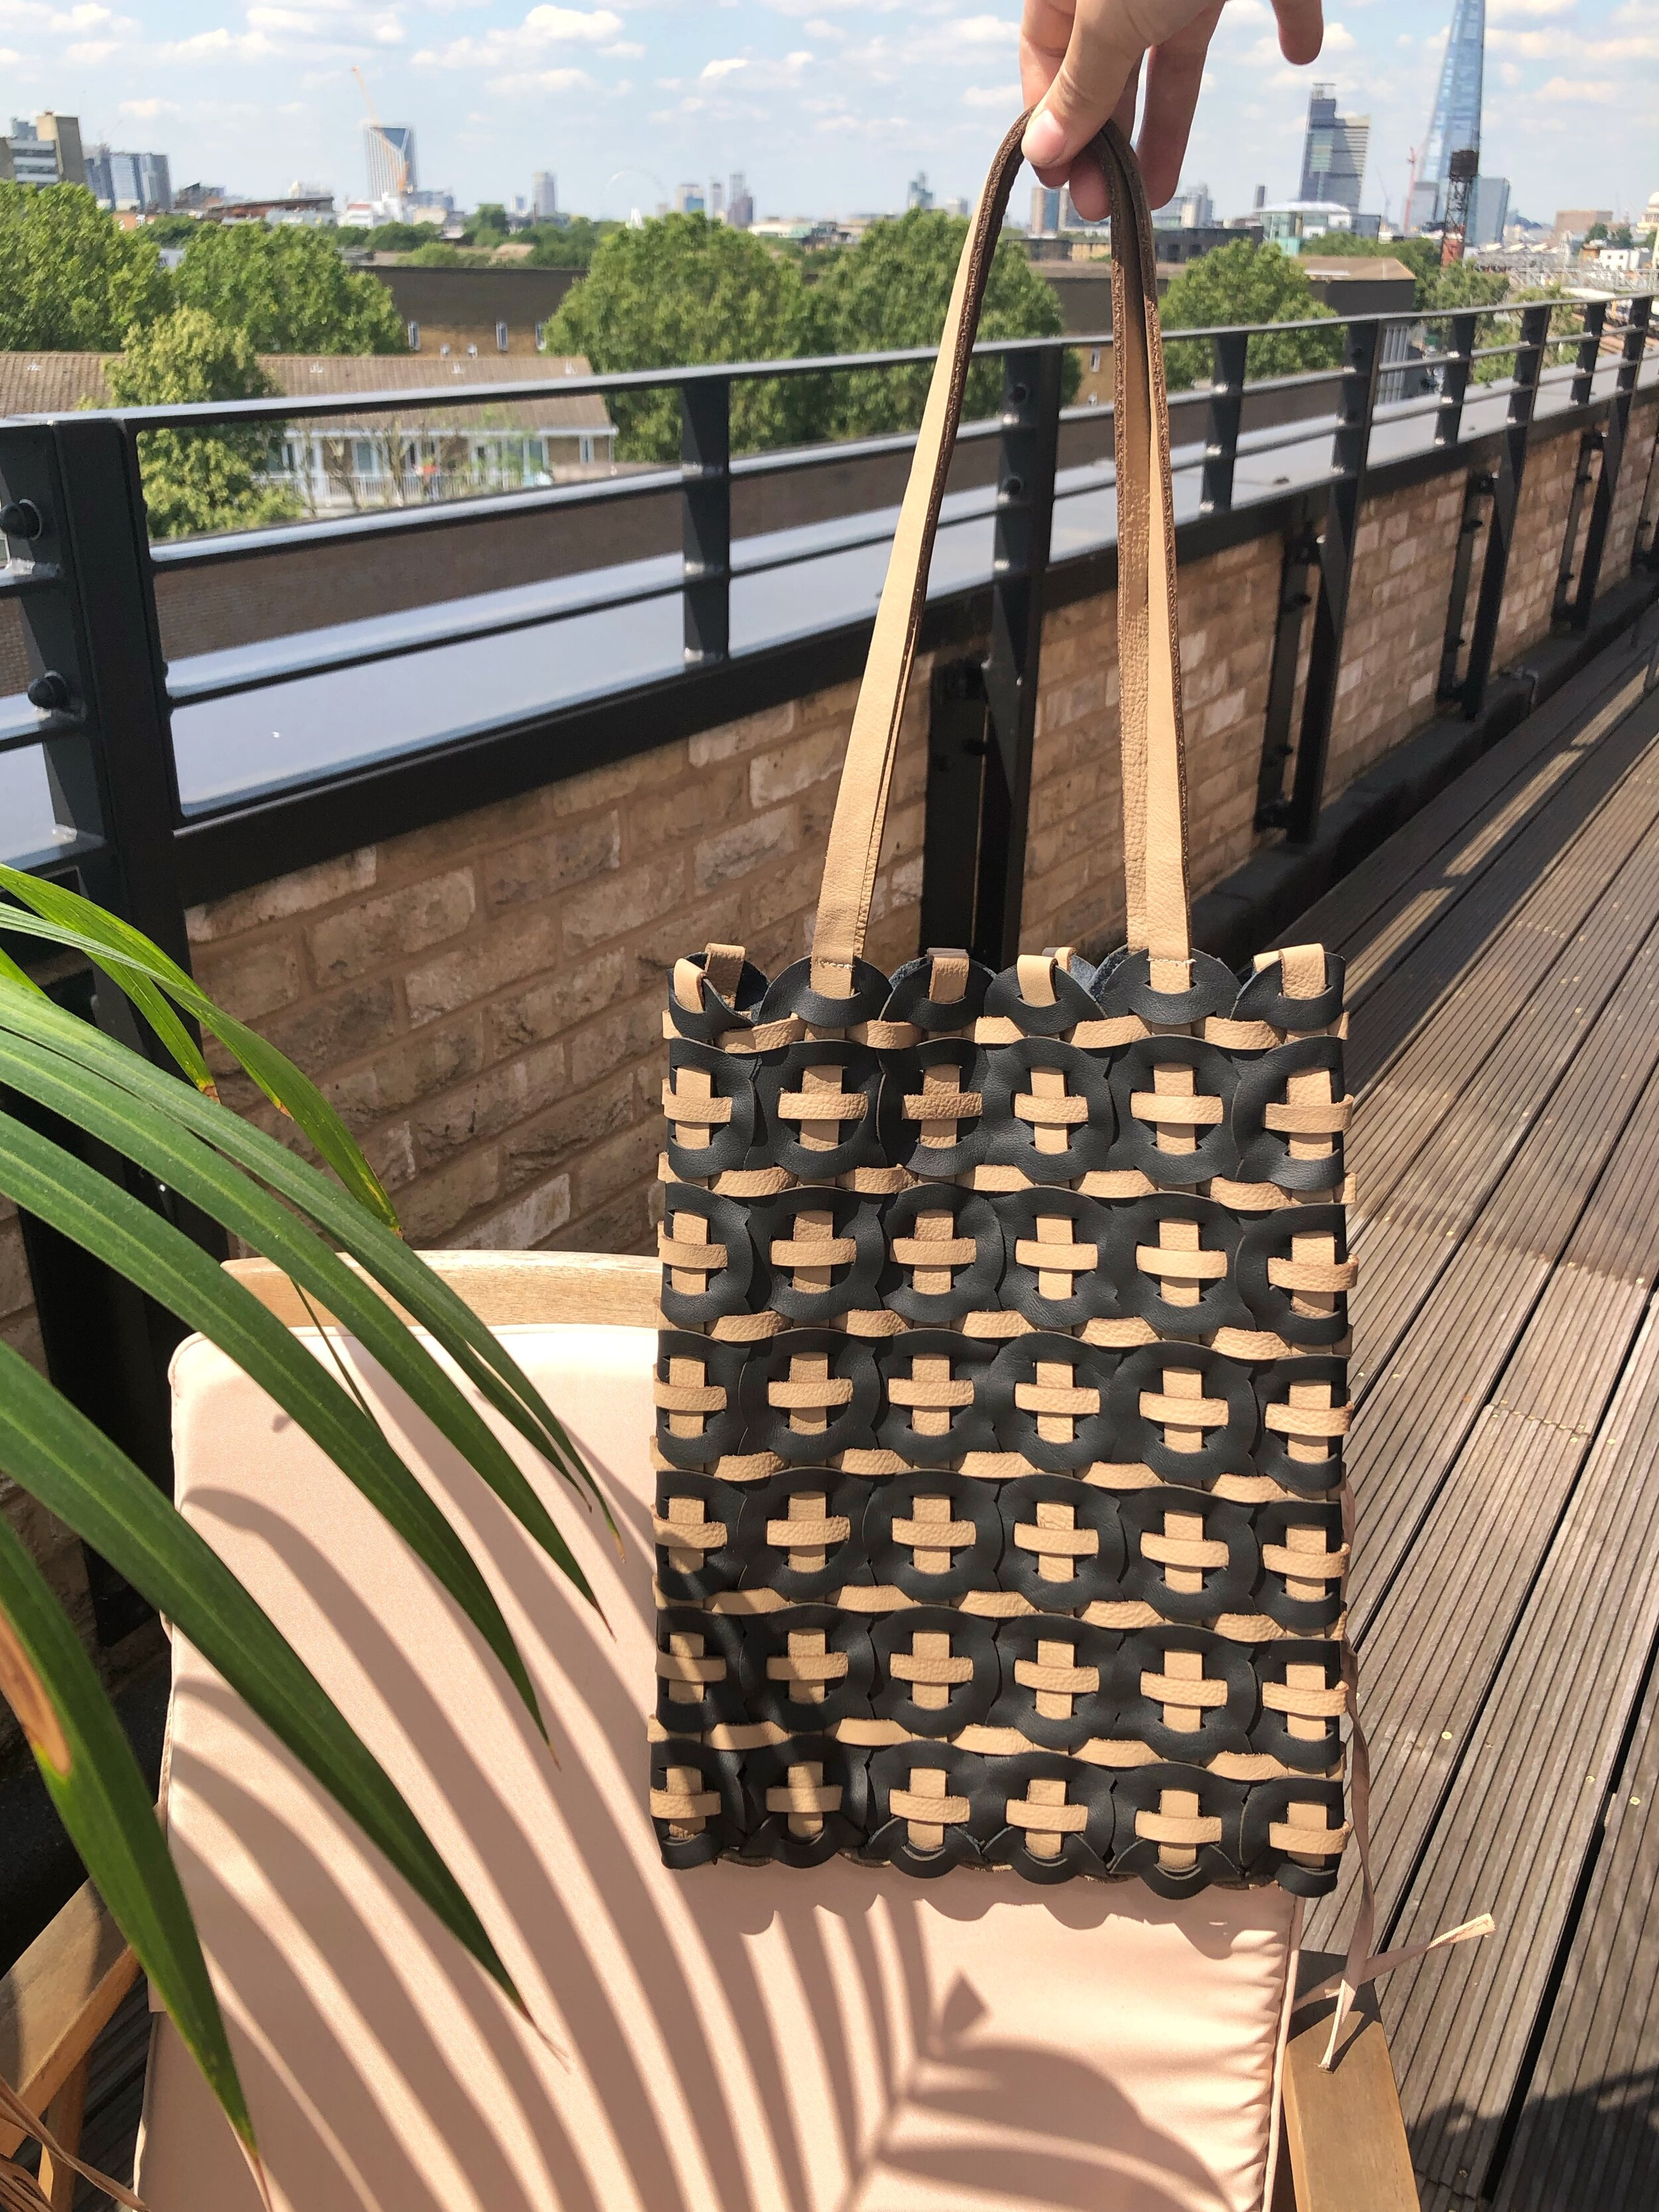 Woven-leather-bag-in-London.JPG